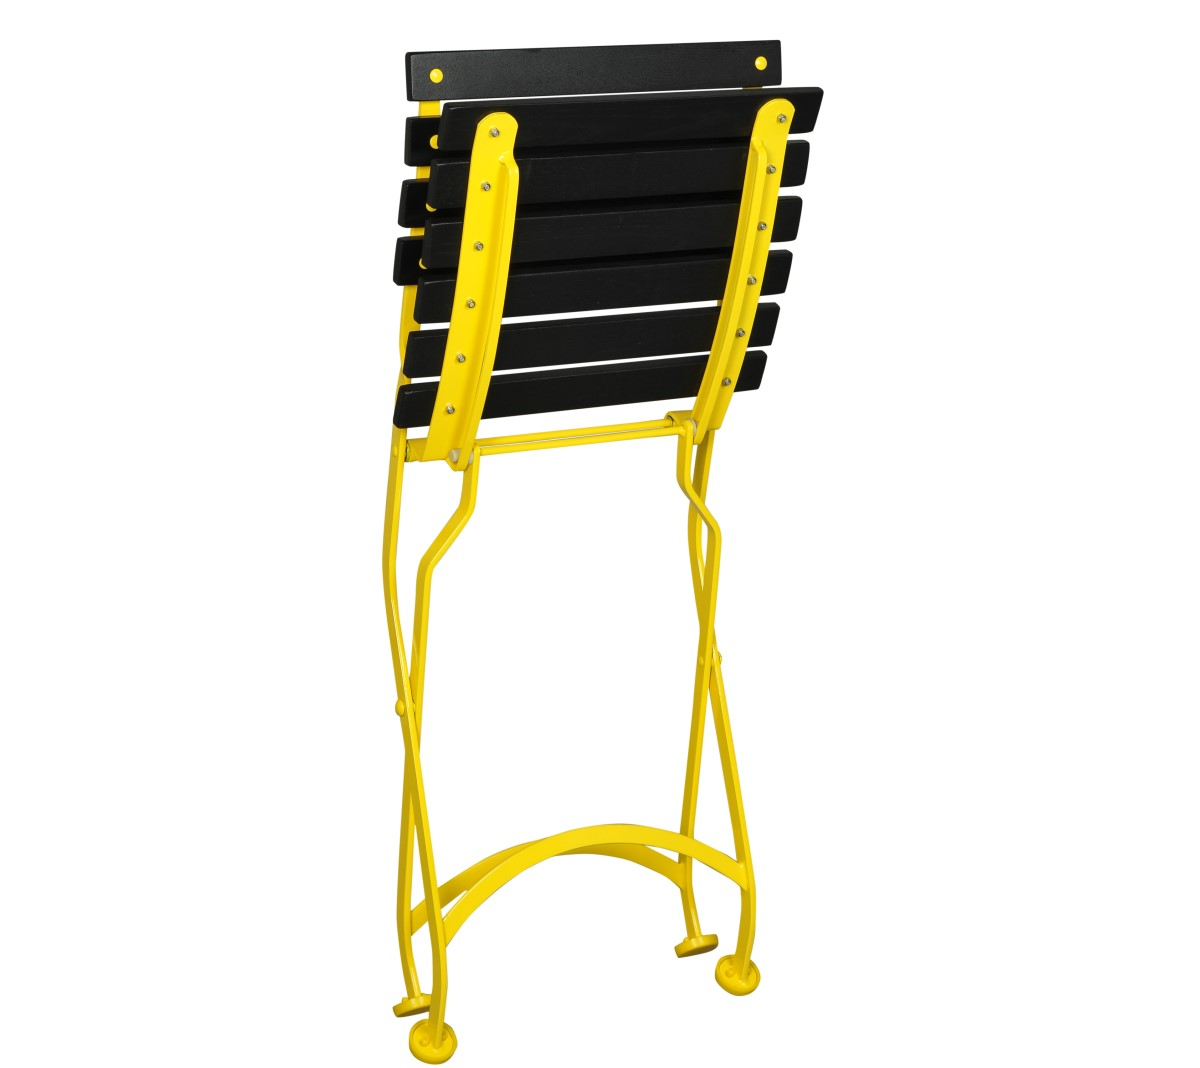 Folded Veronique Chair 5504 - Black Slats and Yellow Frame